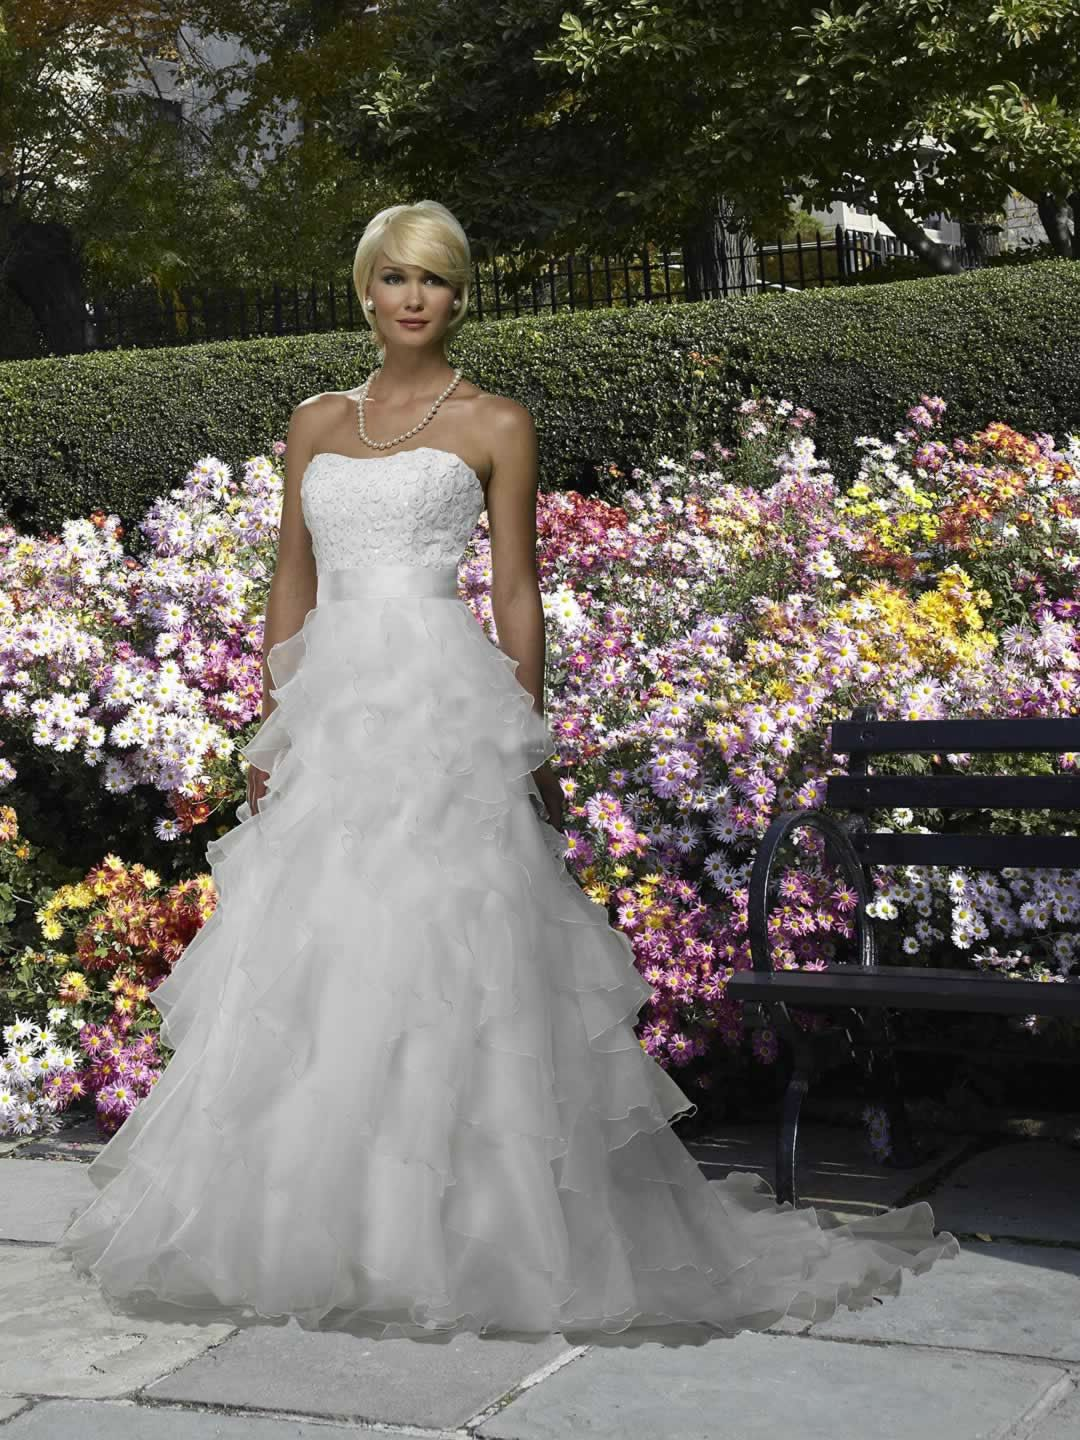 Fantasy By Forever Yours Wedding Dresses Style 410223